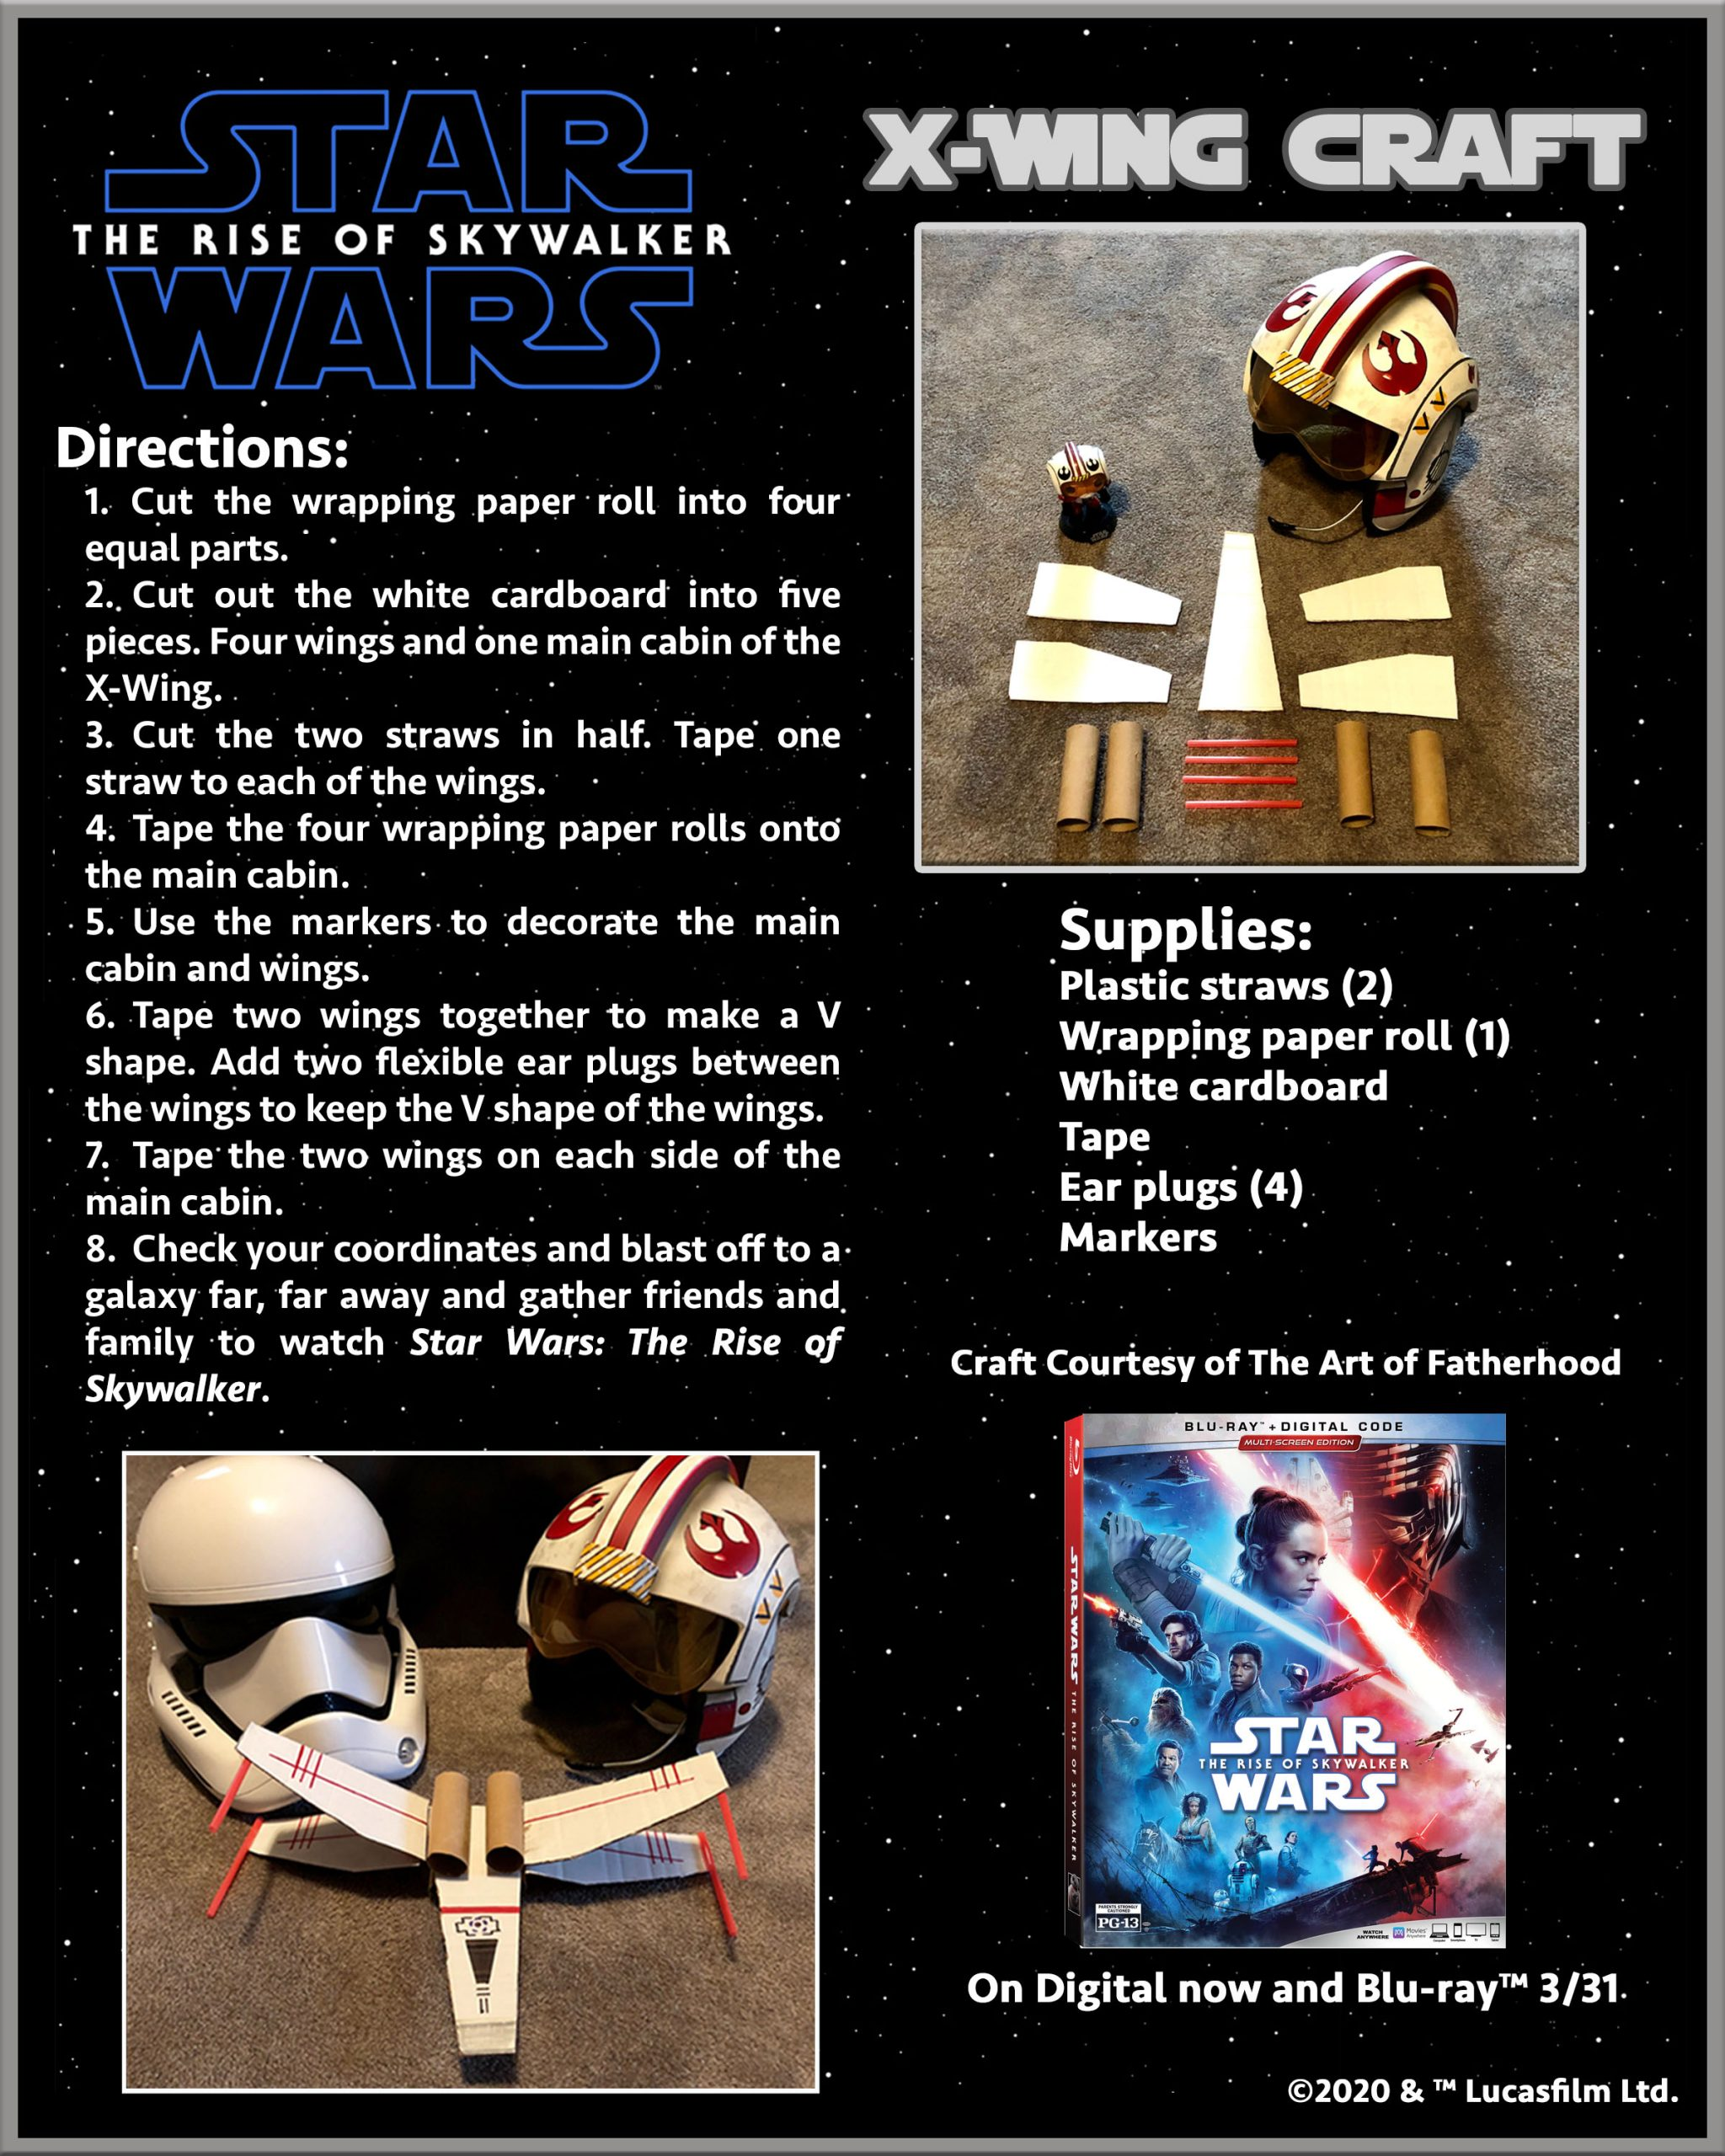 At Home Activity – Celebrate Star Wars: The Rise of Skywalker By Creating Your Own X-Wing!